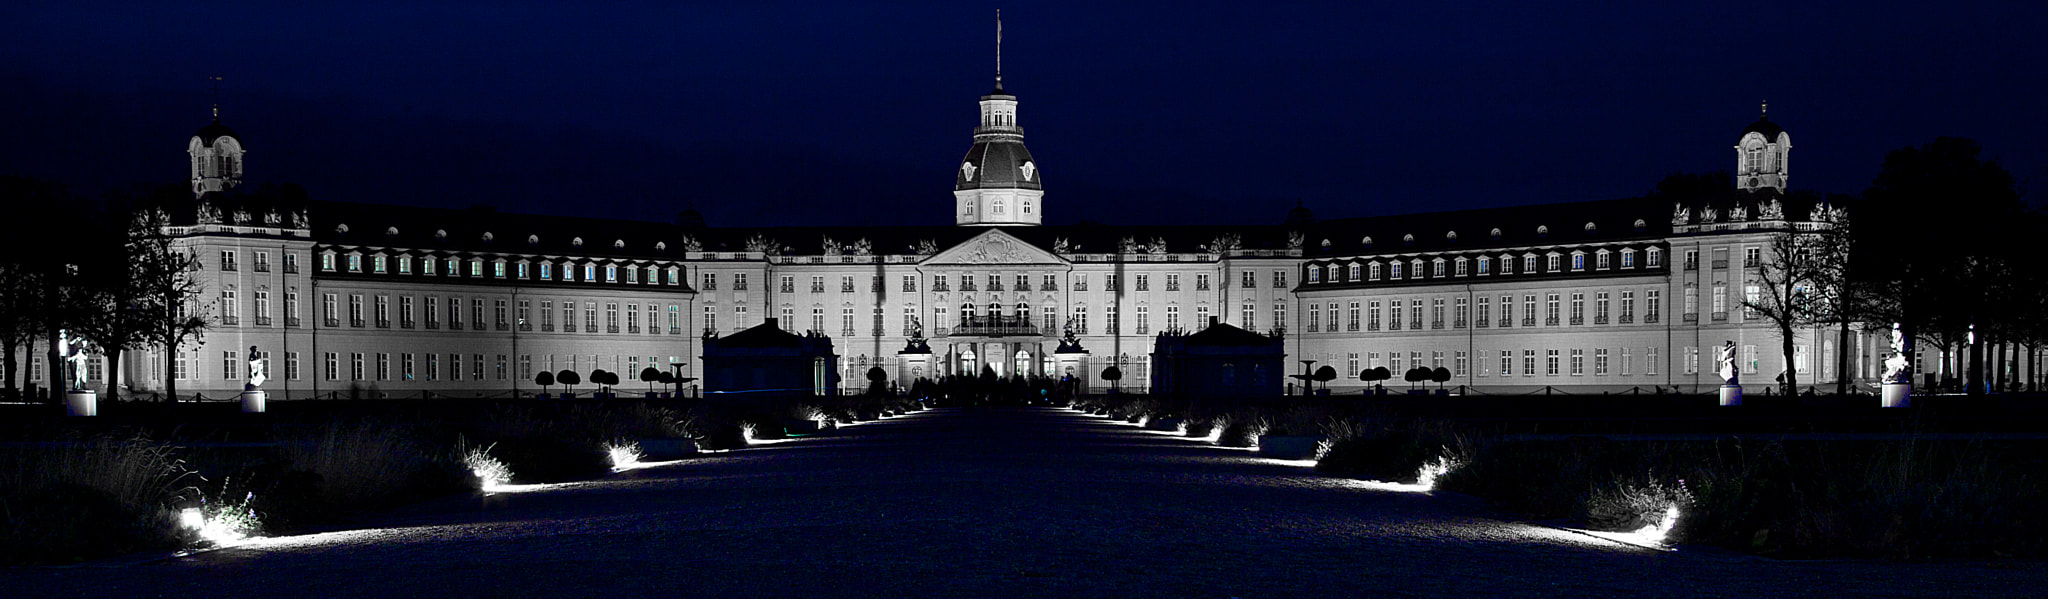 Photograph Tinted Castle Karlsruhe by Thorsten Jung on 500px